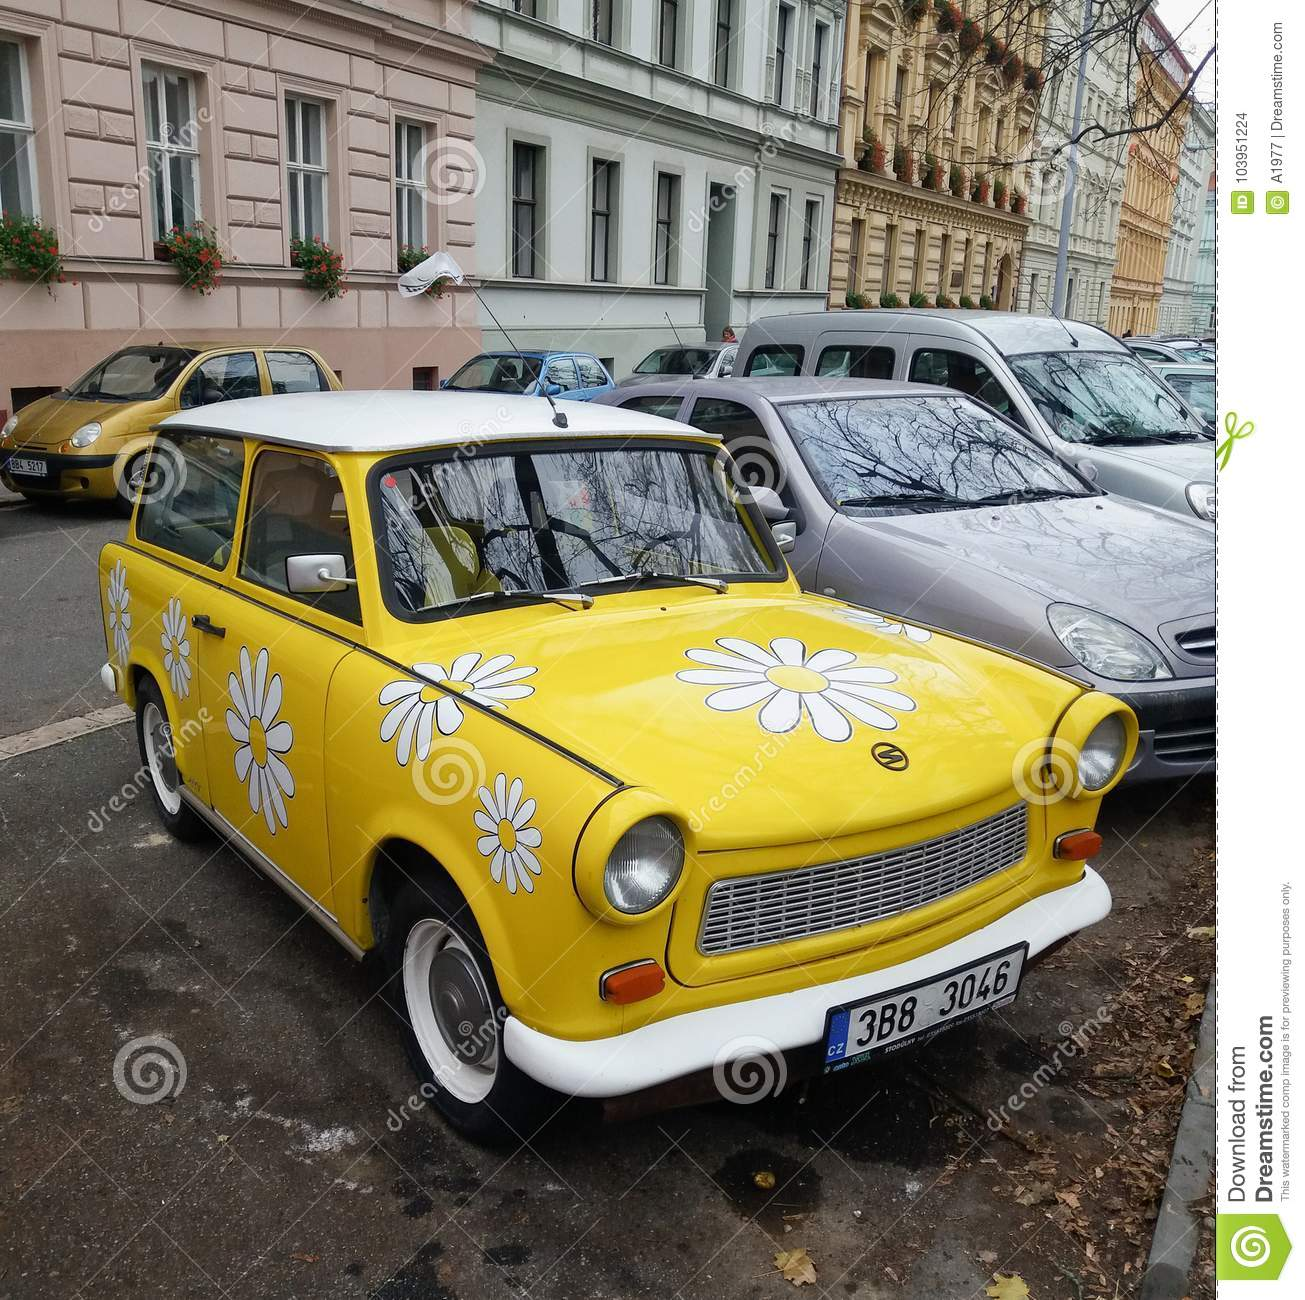 Trabant Clipart Flower Power Trabant Car Editorial Stock Image Image Of Power